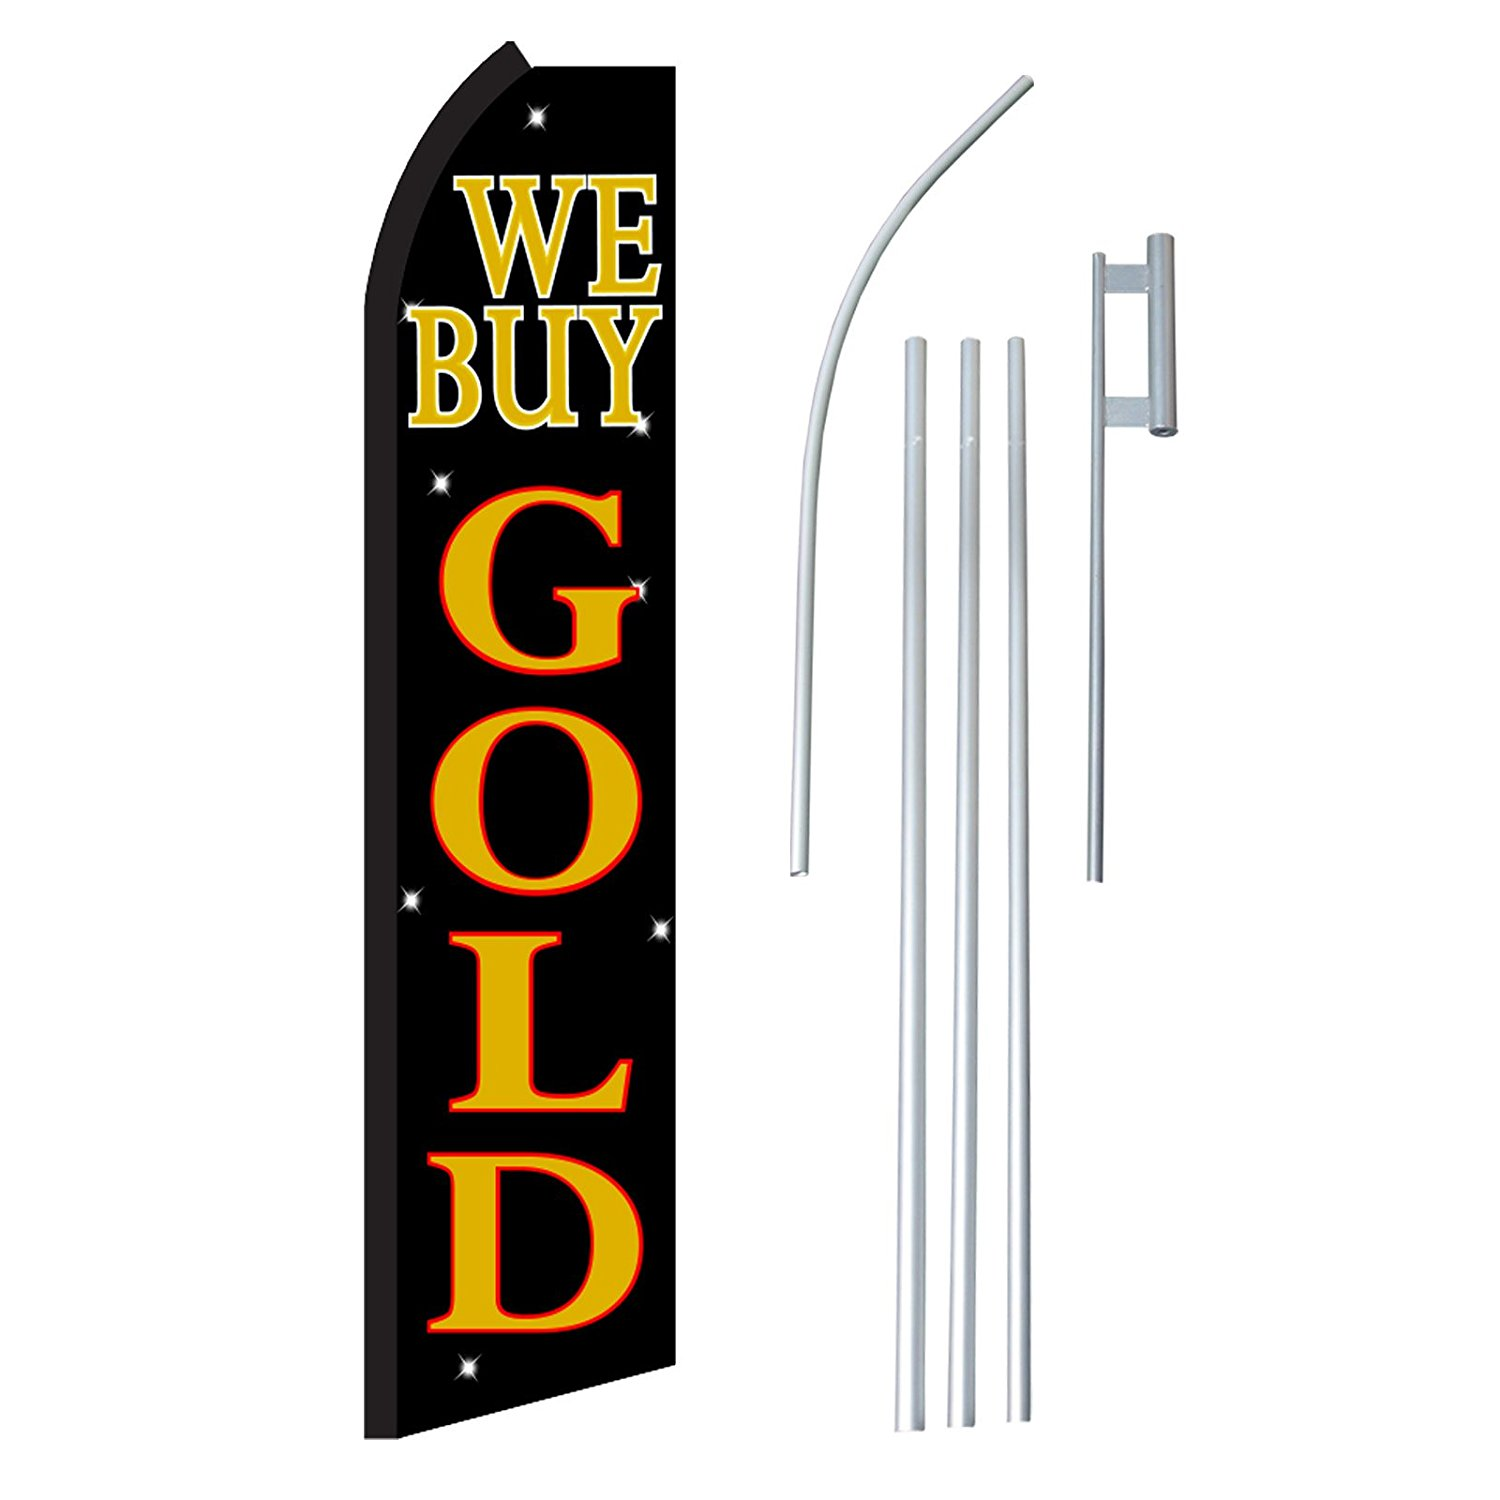 """NEOPlex - """"We Buy Gold"""" Complete Flag Kit - Includes 12' Swooper Feather Business Flag With 15-foot Anodized Aluminum Flagpole AND Ground Spike"""